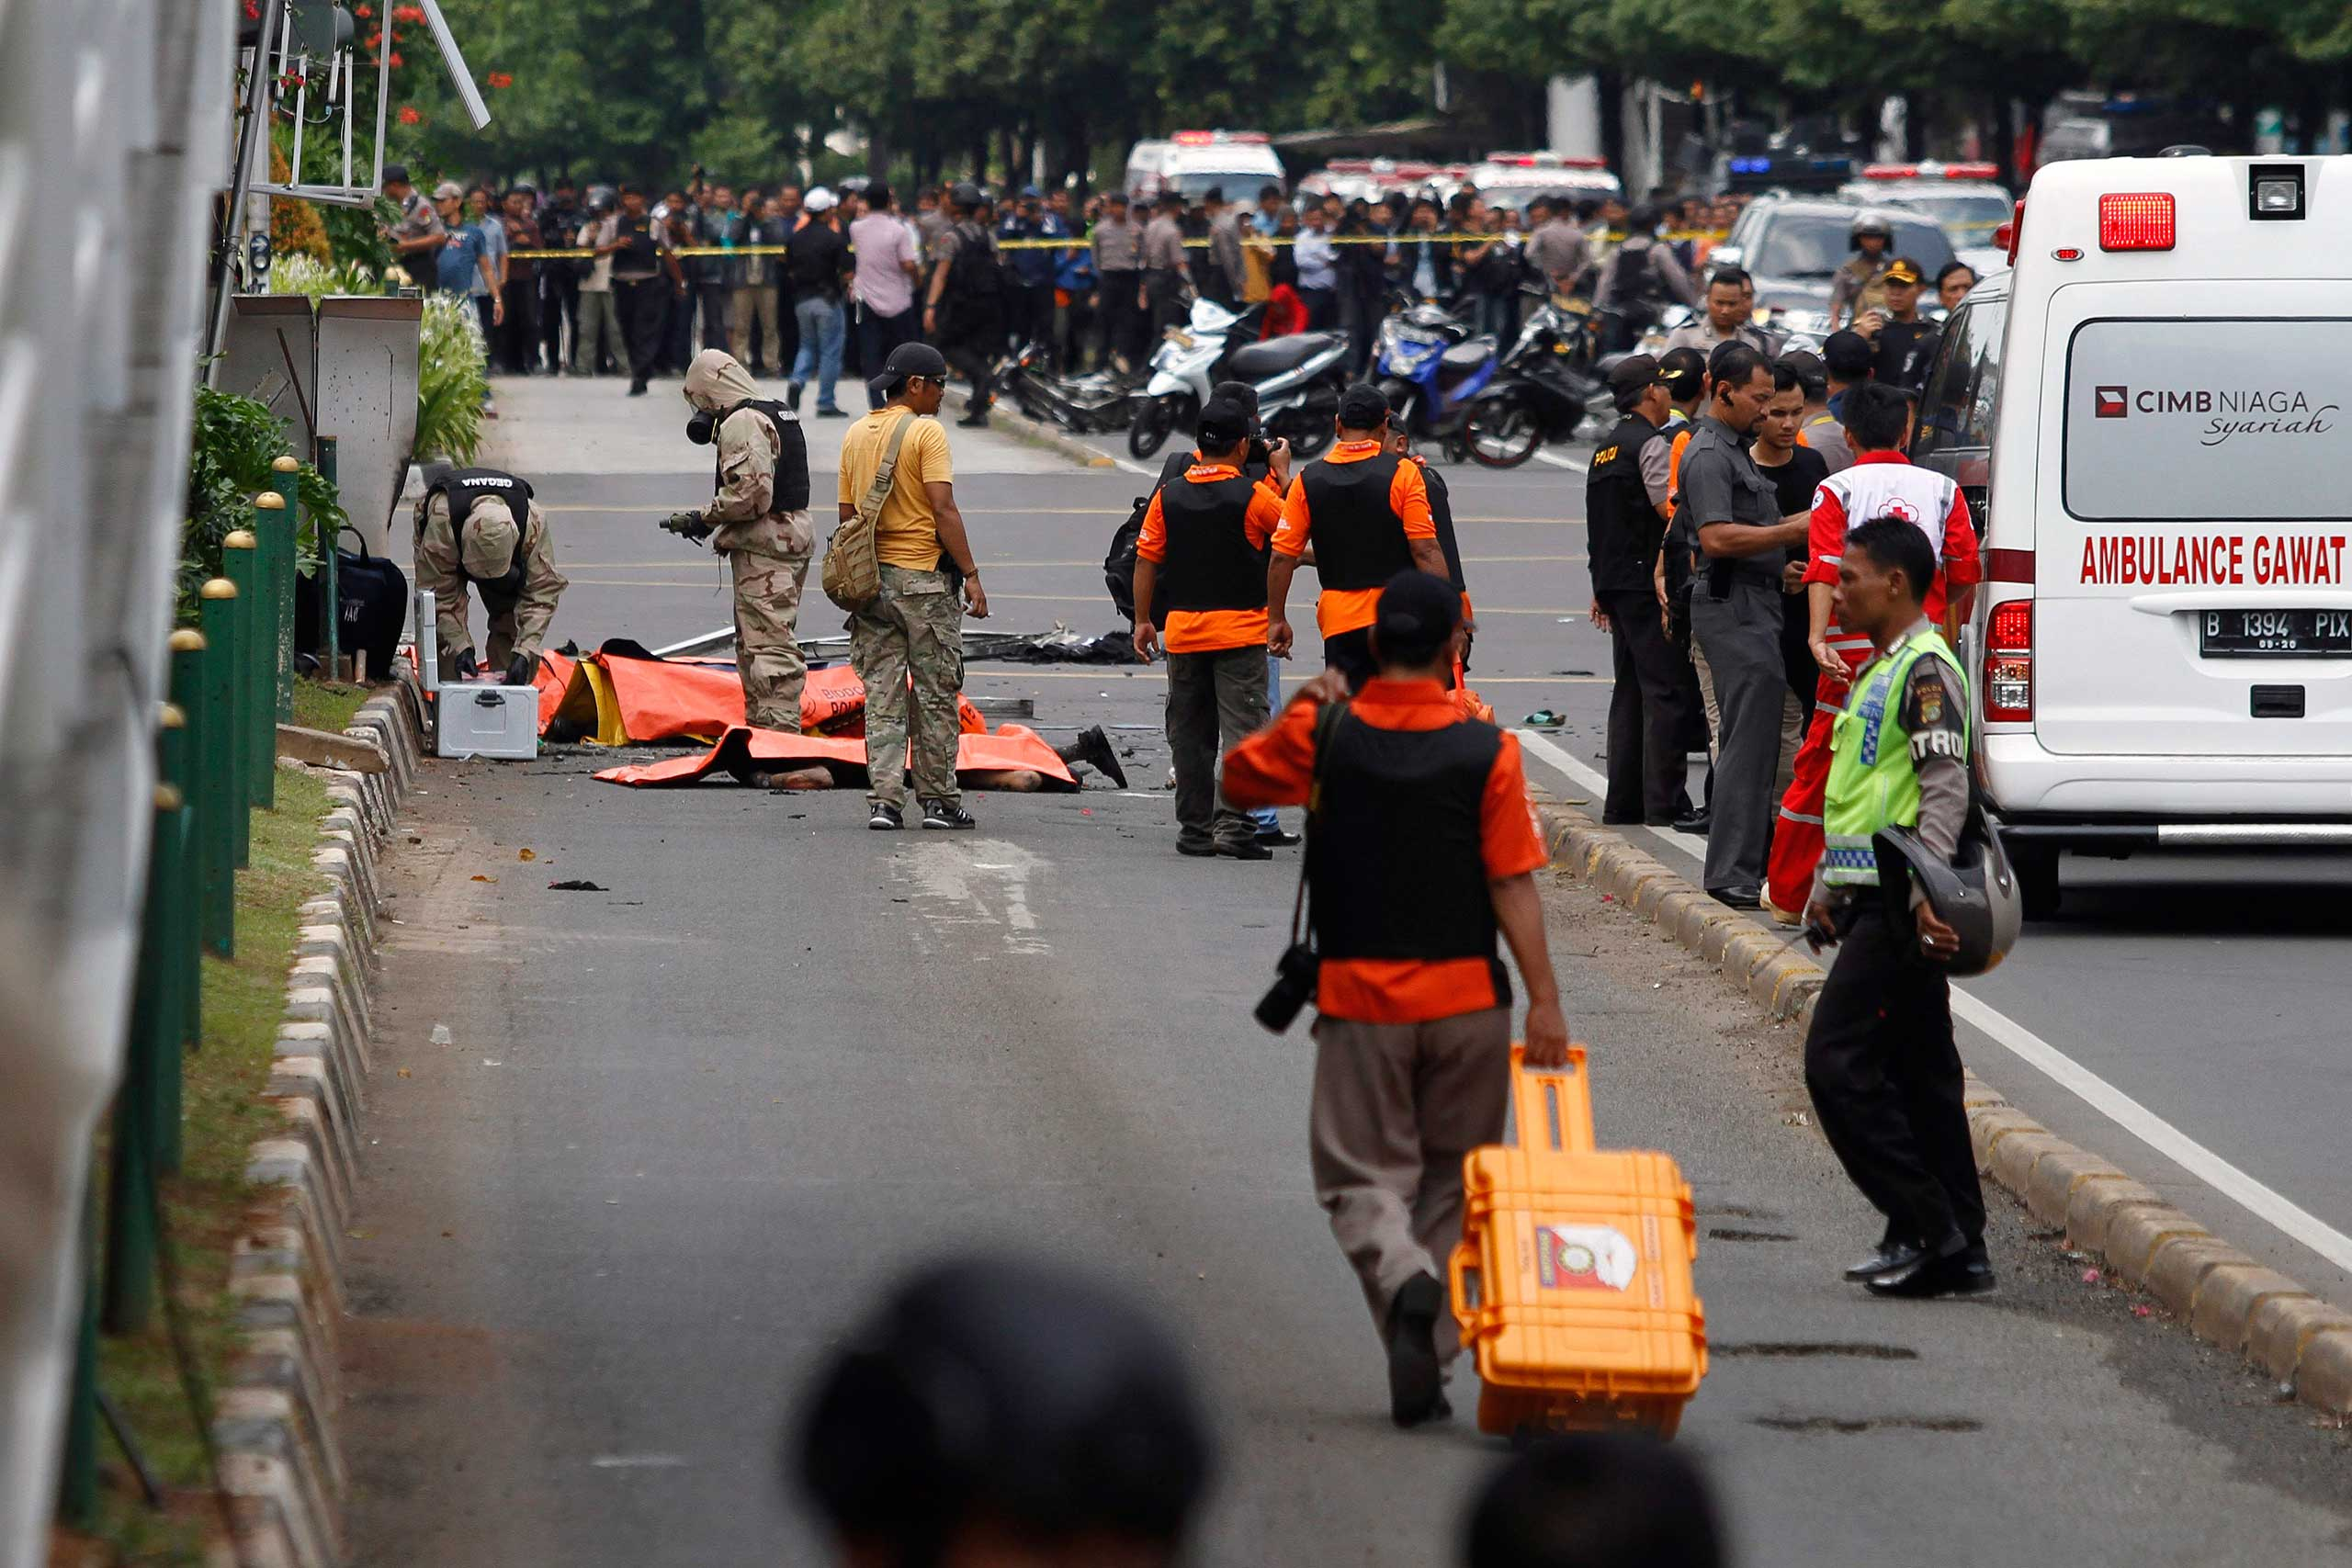 Special forces officers identify victims at the scene of a bomb blast in Jakarta, Indonesia, Jan. 14, 2016. Seven people, including several suspected attackers, died in bomb blasts and gunfire in the center of the Indonesian capital in what the country's president described as an act of terrorism.